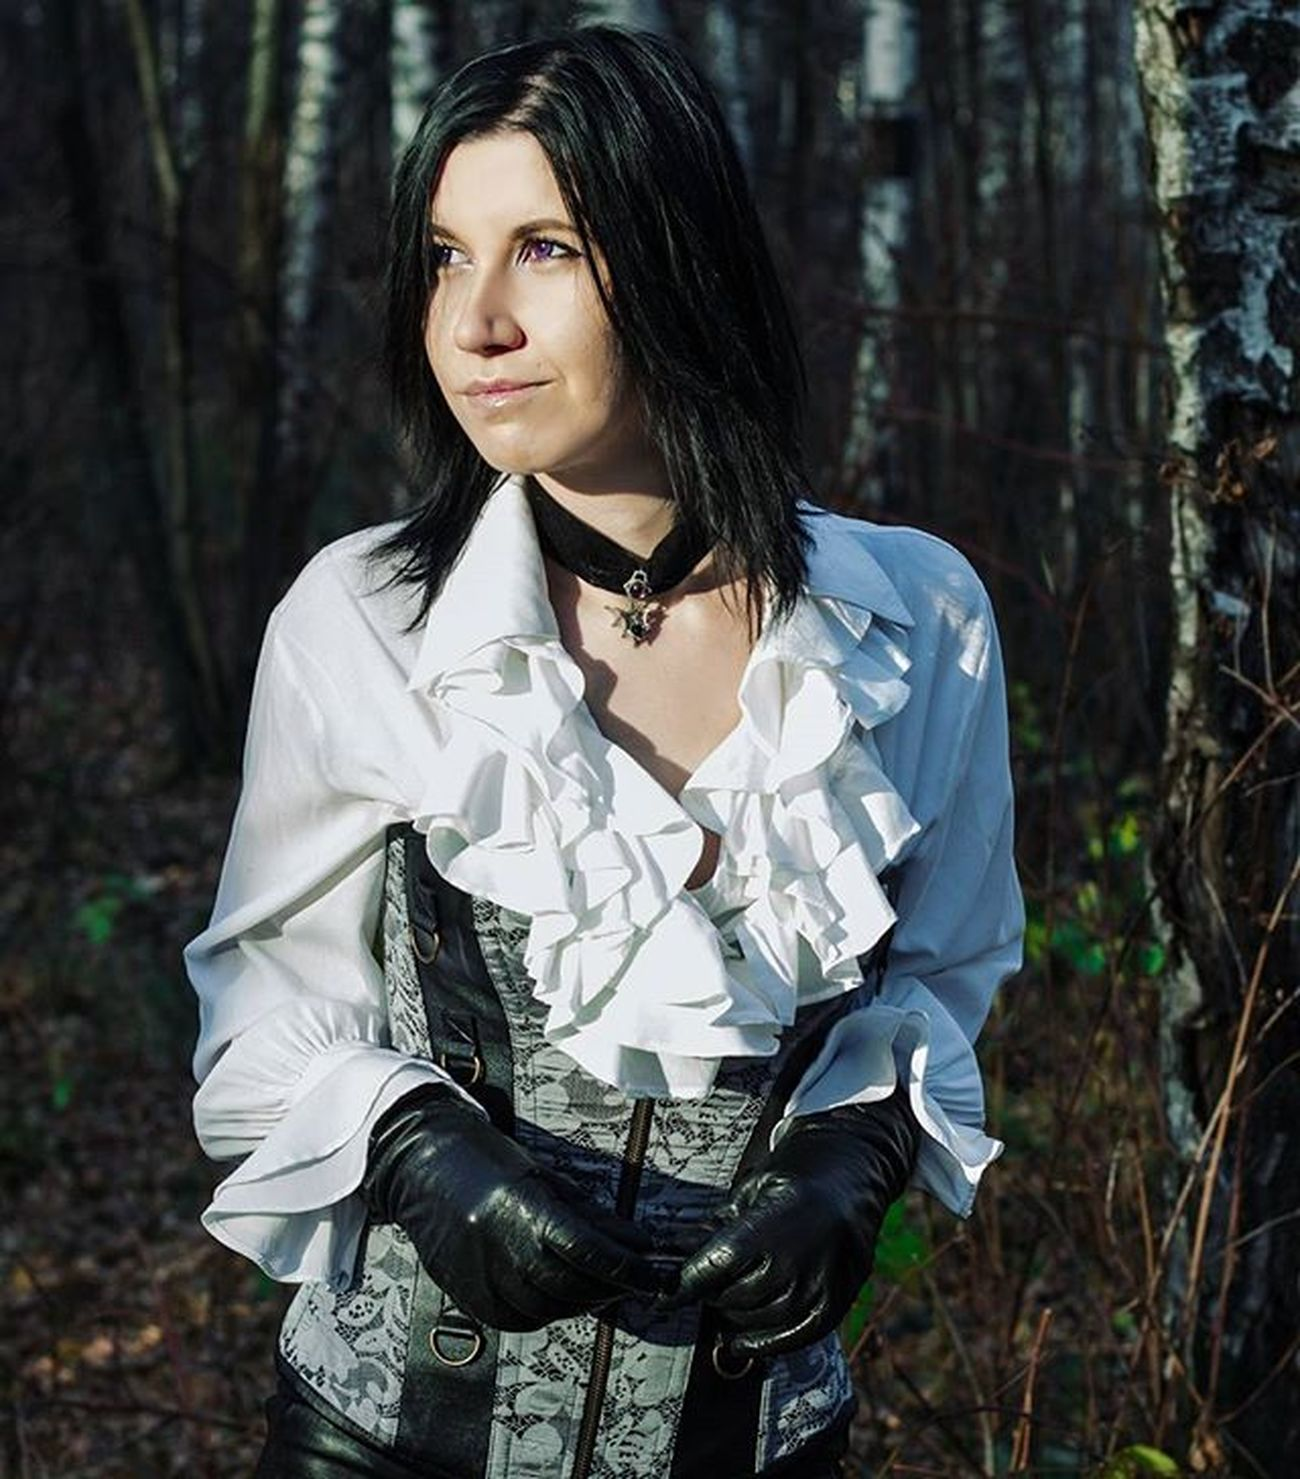 Girl GothicStyle Gothic Gothicgirl жабо блузка Blackandwhiteclothes Blackandwhite Choker Blackhair Violeteyes Noir Smile Beautifuleyes Beautifulgirl Magicgirl Magicclothes Nicedress Corset Autumn Russiangirl Moscow перчатки Follower Likeback like4like followme лосиныйостров punkrave alchemygothic